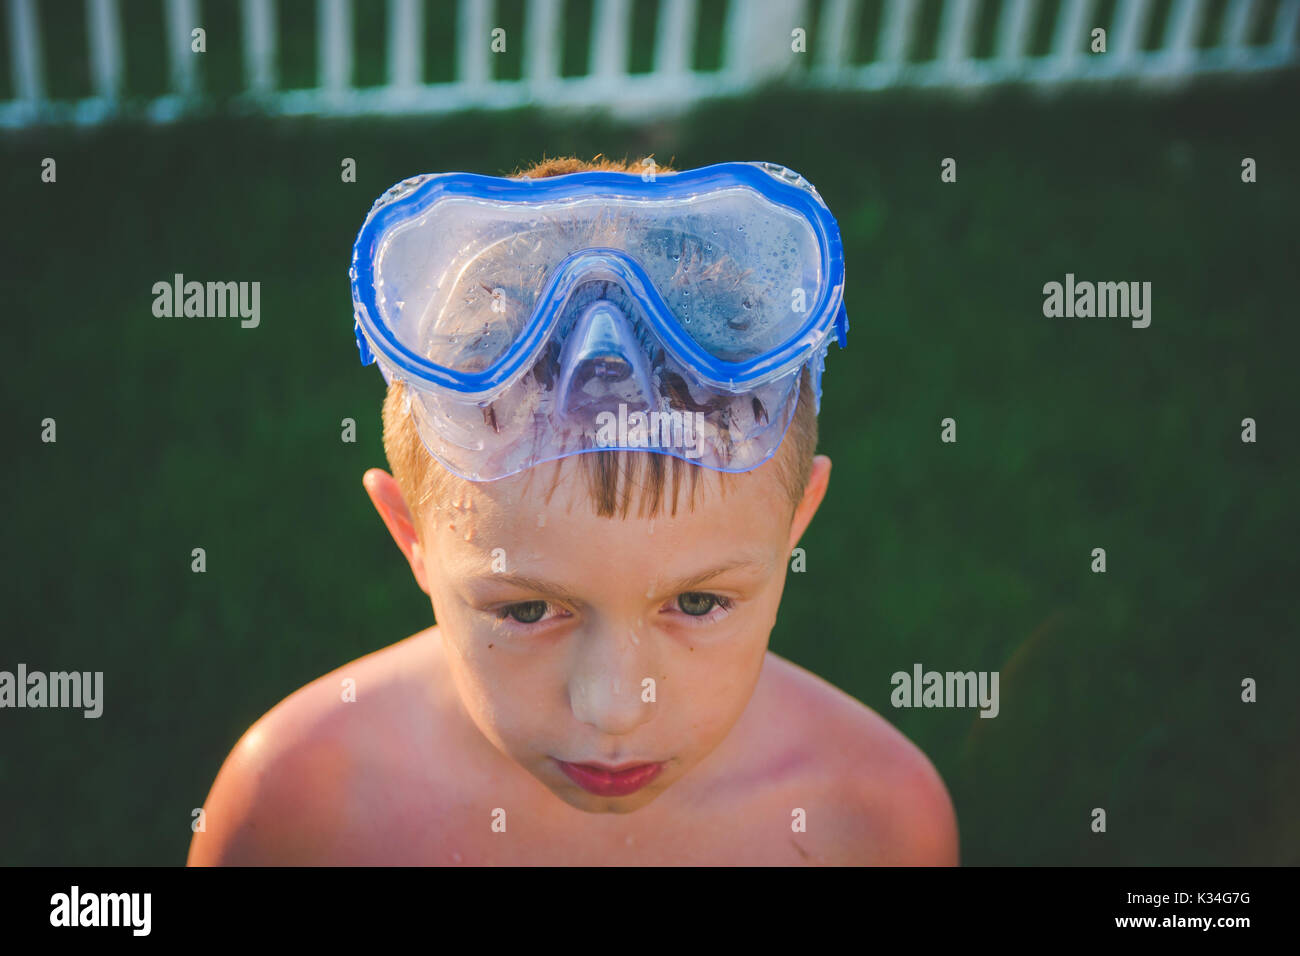 A boy wears a scuba mask on his head during the summer while the sun shines on him. - Stock Image